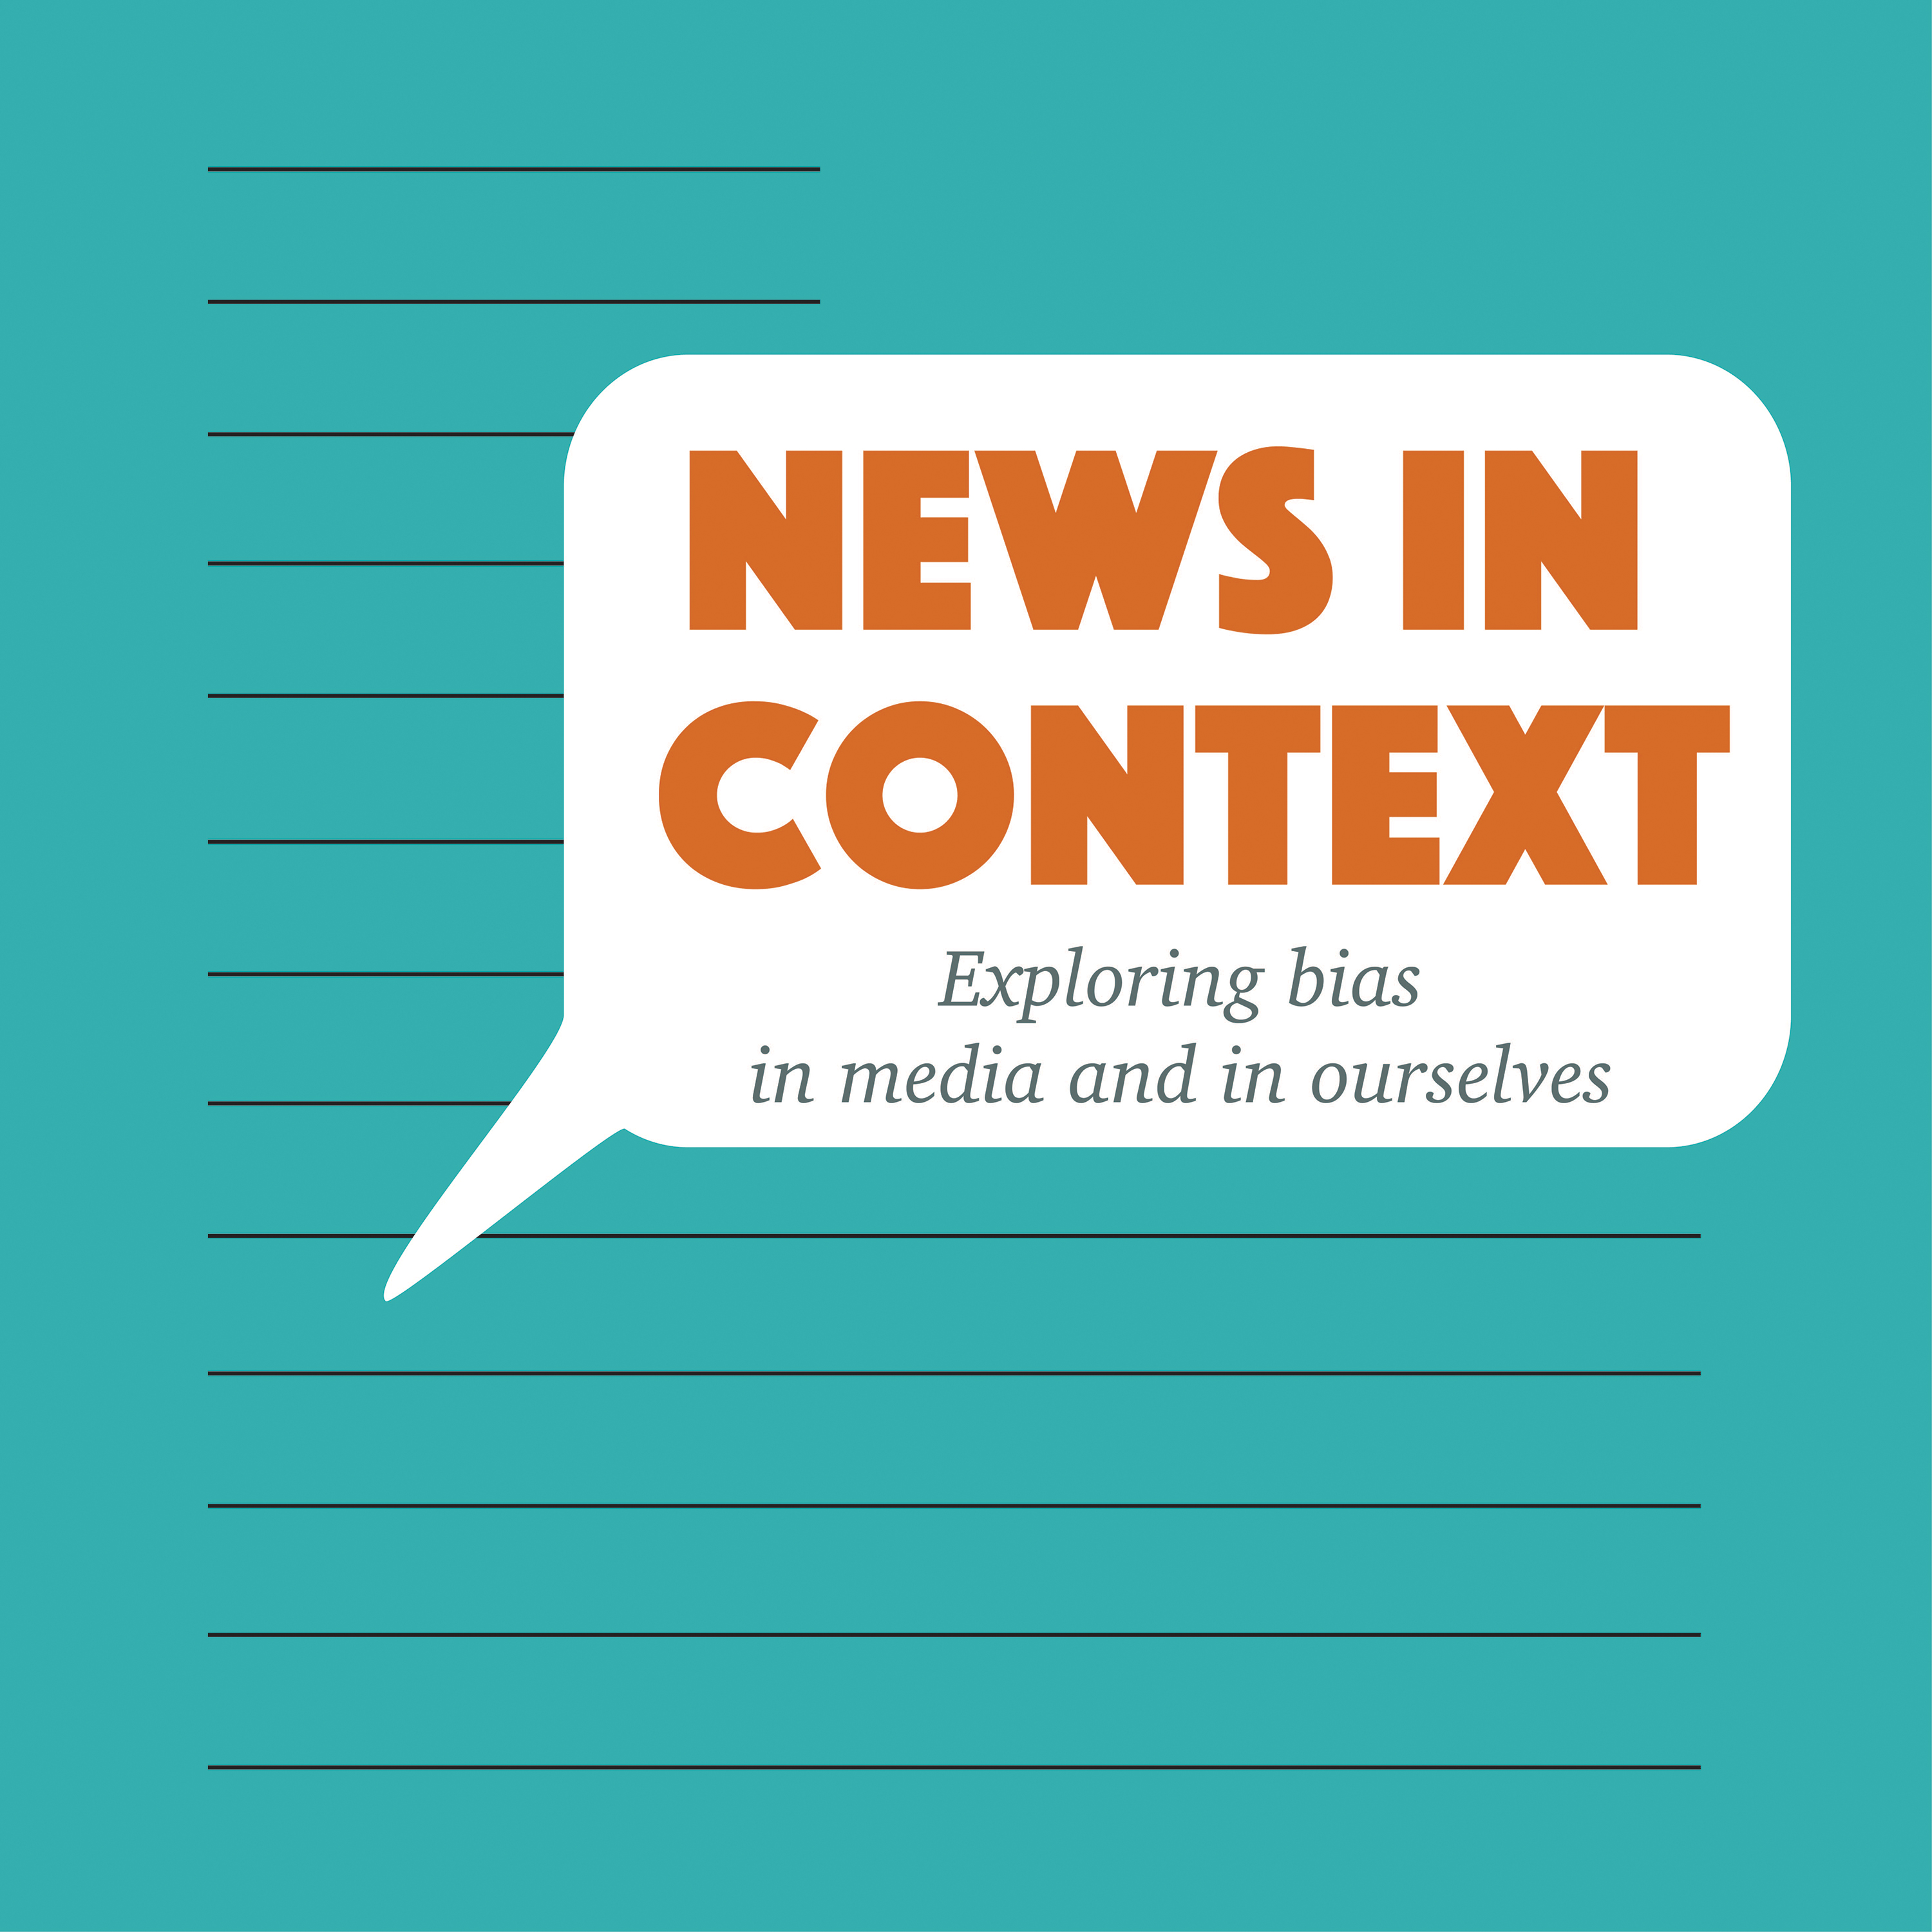 Caption: Logo: News In Context, Credit: Artwork by Joyce Cheng